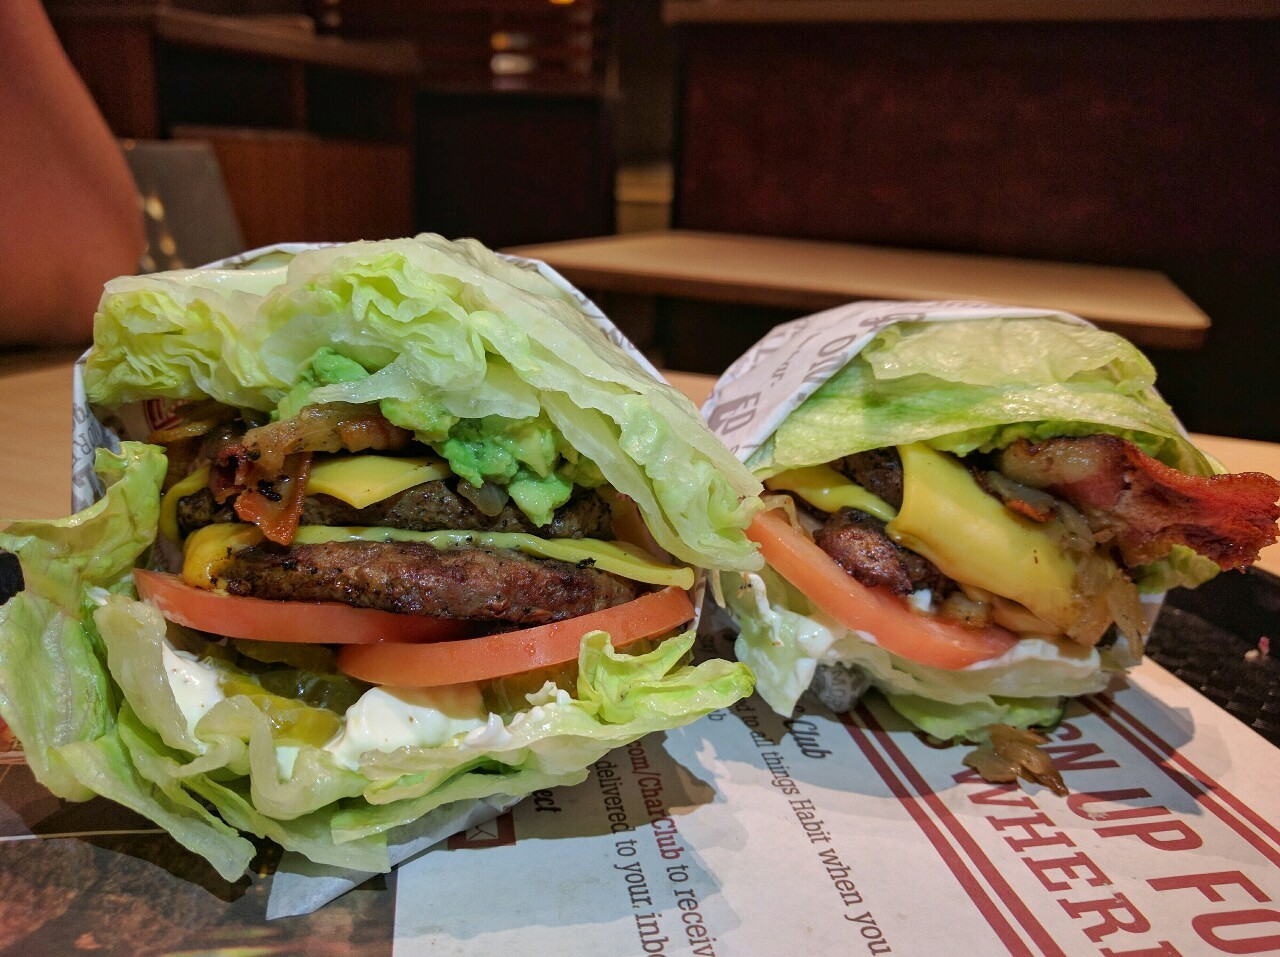 paleo, take out, credit and the habit burger grill